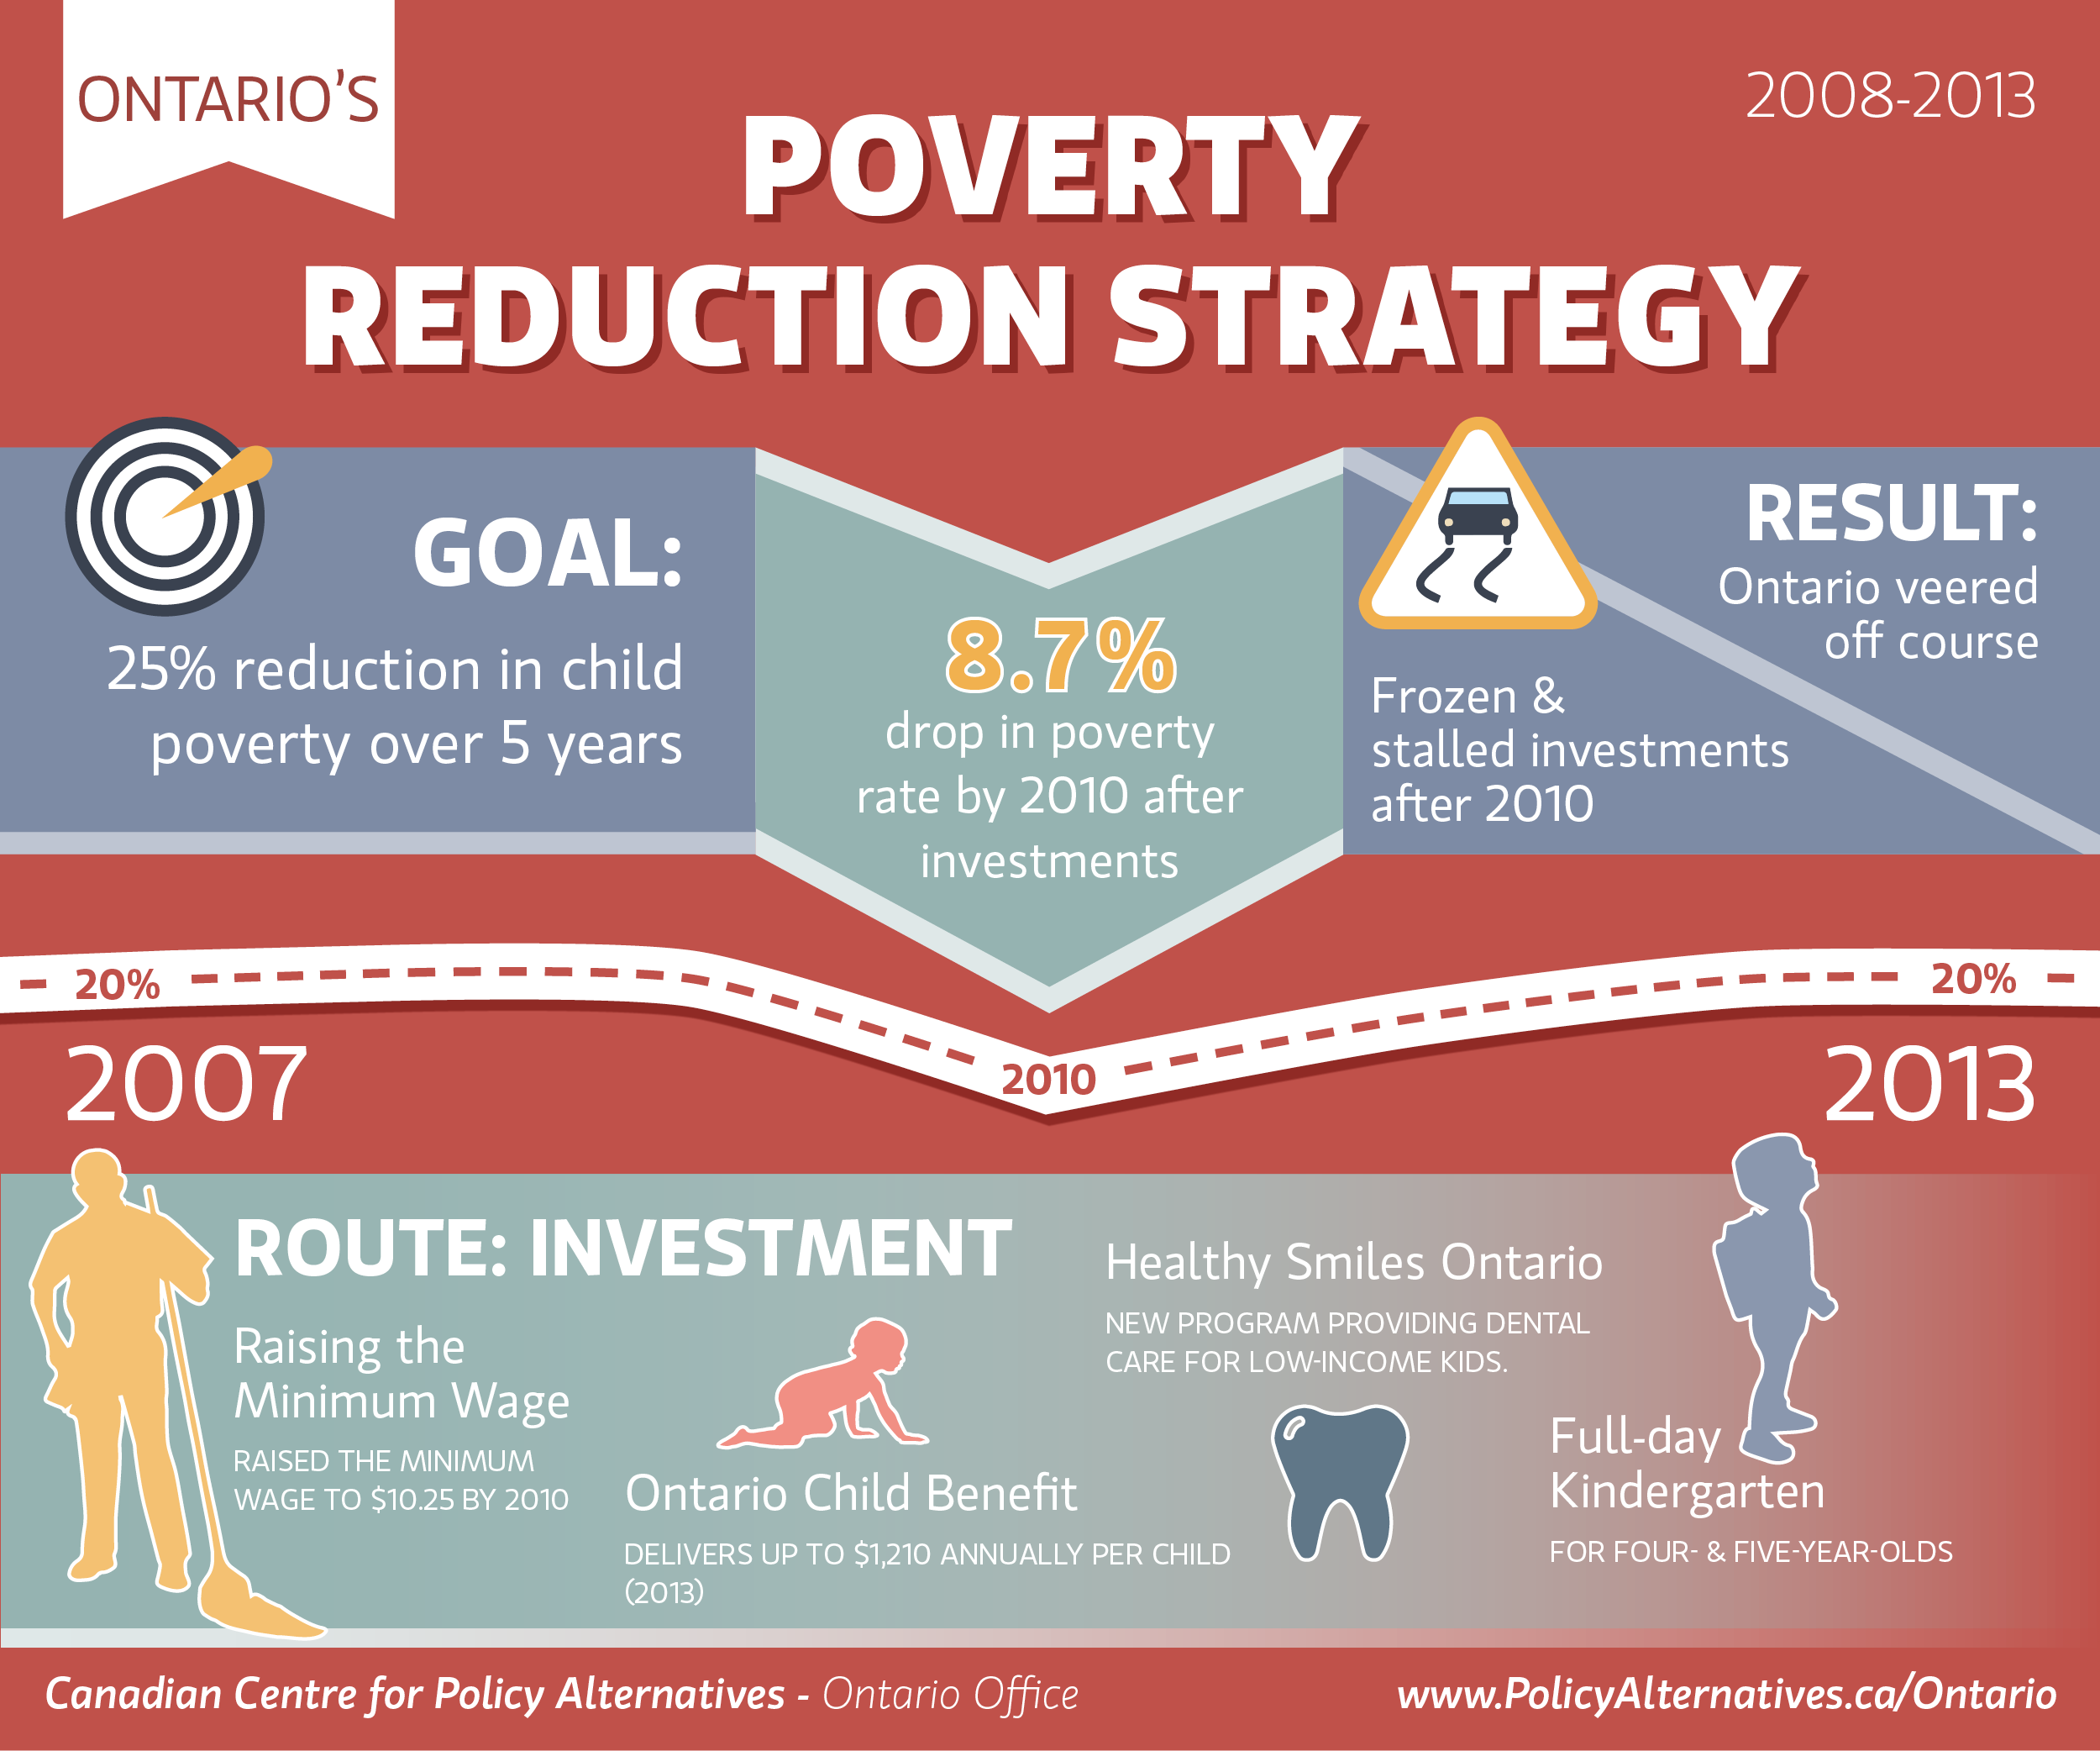 This #Infographic Wednesday over on the #HomelessHub Blog Ontario's Child #Poverty Reduction Strategy, and comes from  Canada Centre for Policy Alternatives (CCPA). The infographic states that by 2010 there was an 8.7% drop in child poverty after investments were made into the poverty reduction strategy. Unfortunately, after 2010, investments into the poverty reduction strategies stalled and #childpoverty rates began to increase. This is partially due to a lack of federal government…